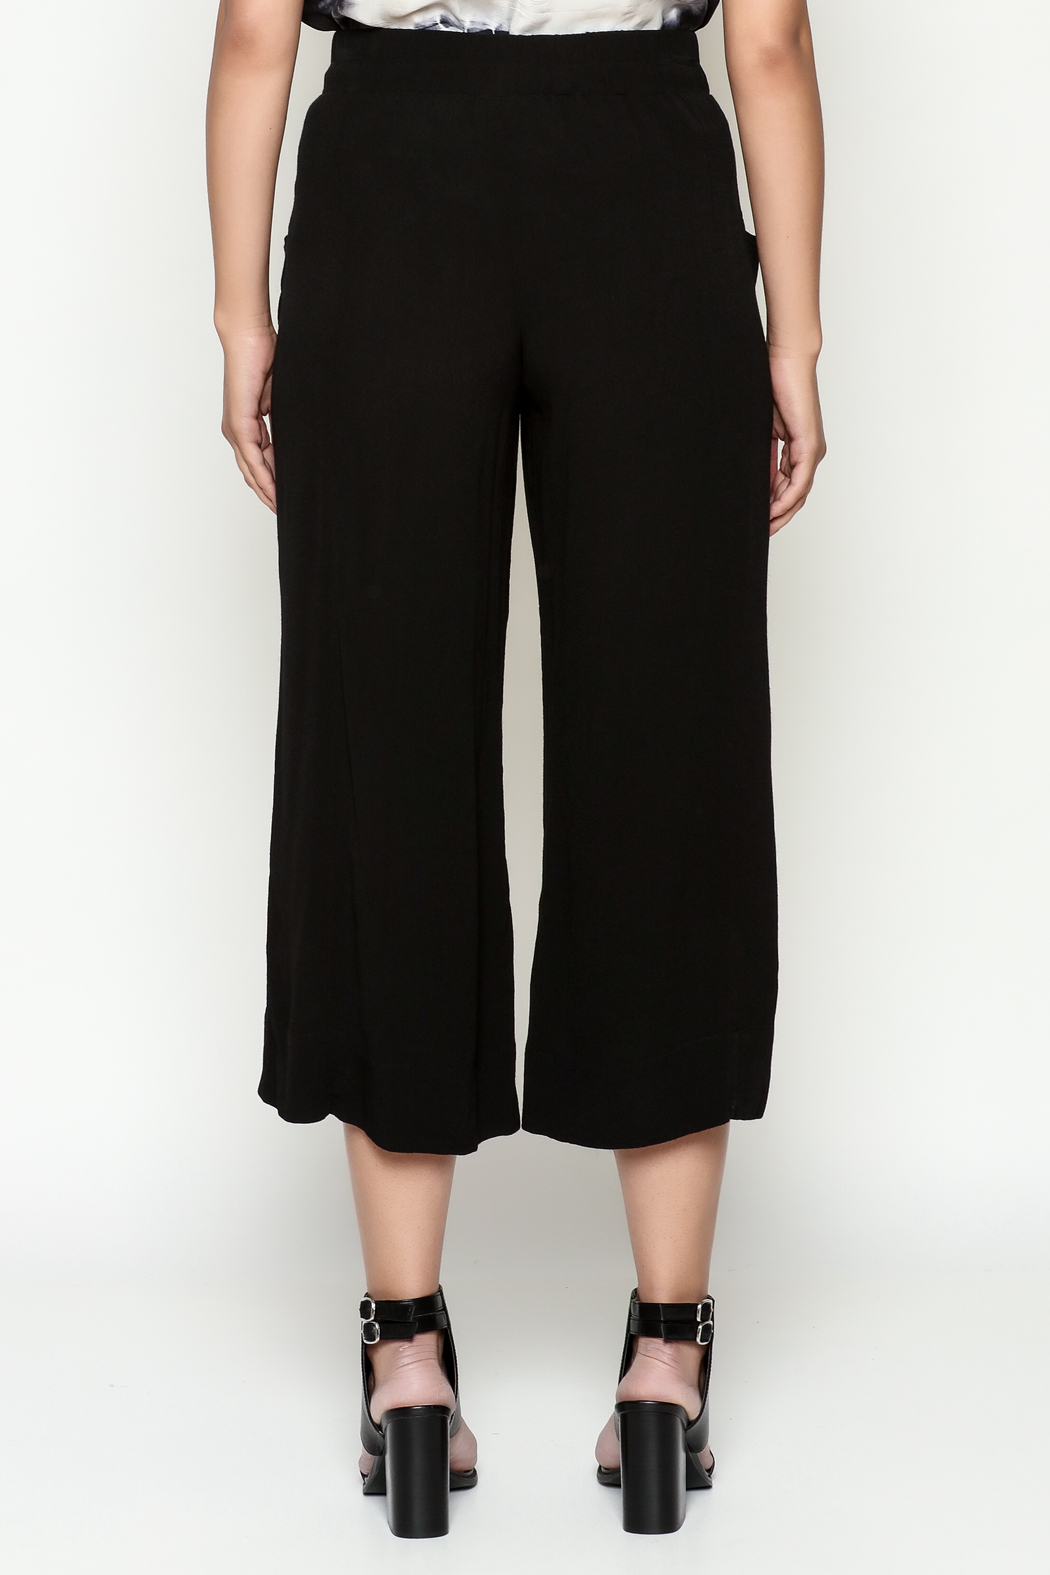 Cousin Earl Black Palazzo Pants - Back Cropped Image